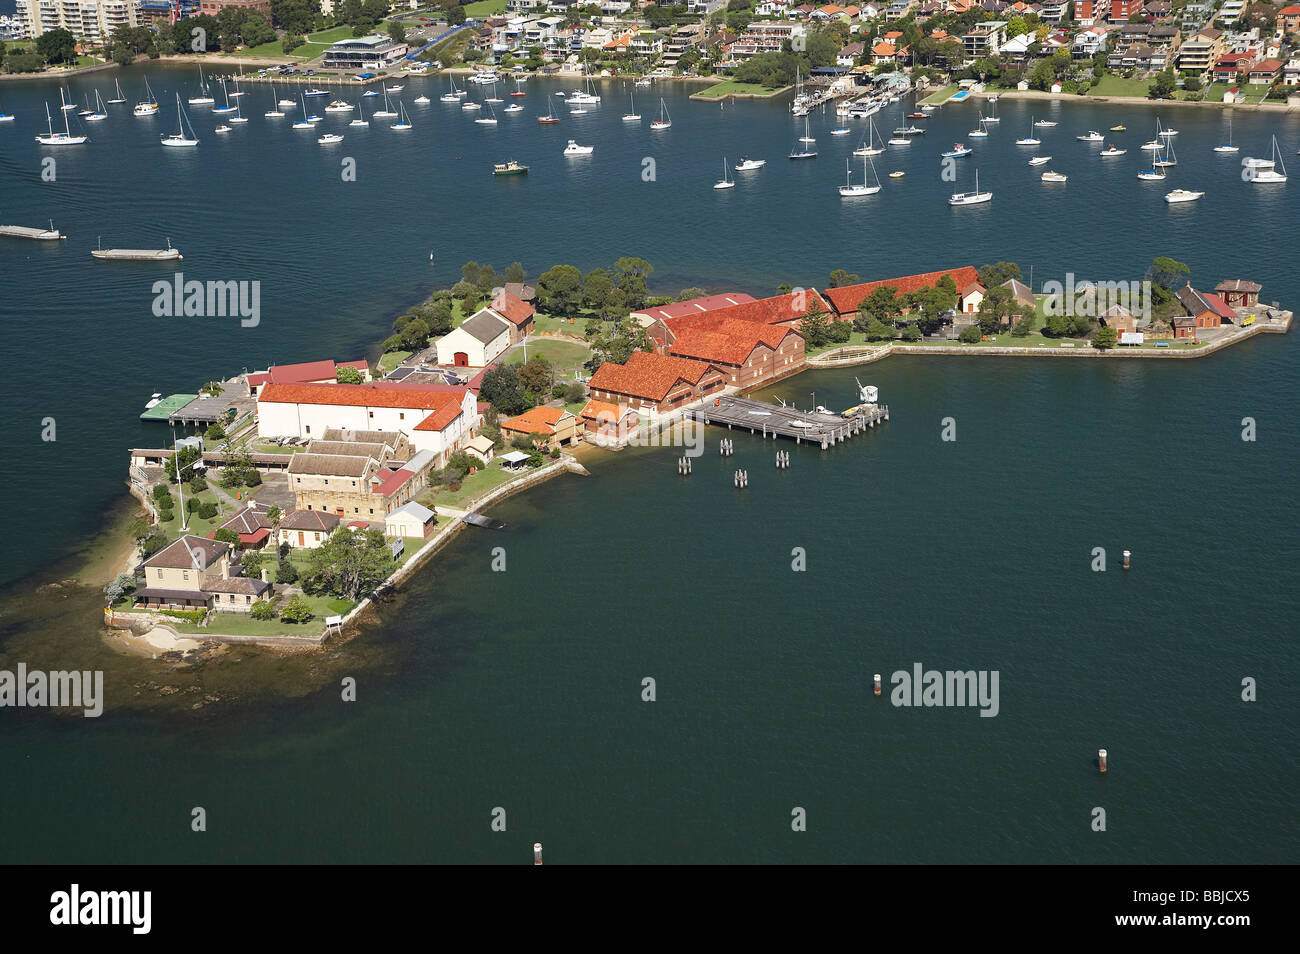 Historical Spectacle Island Parramatta River Sydney New South Wales Australia aerial - Stock Image